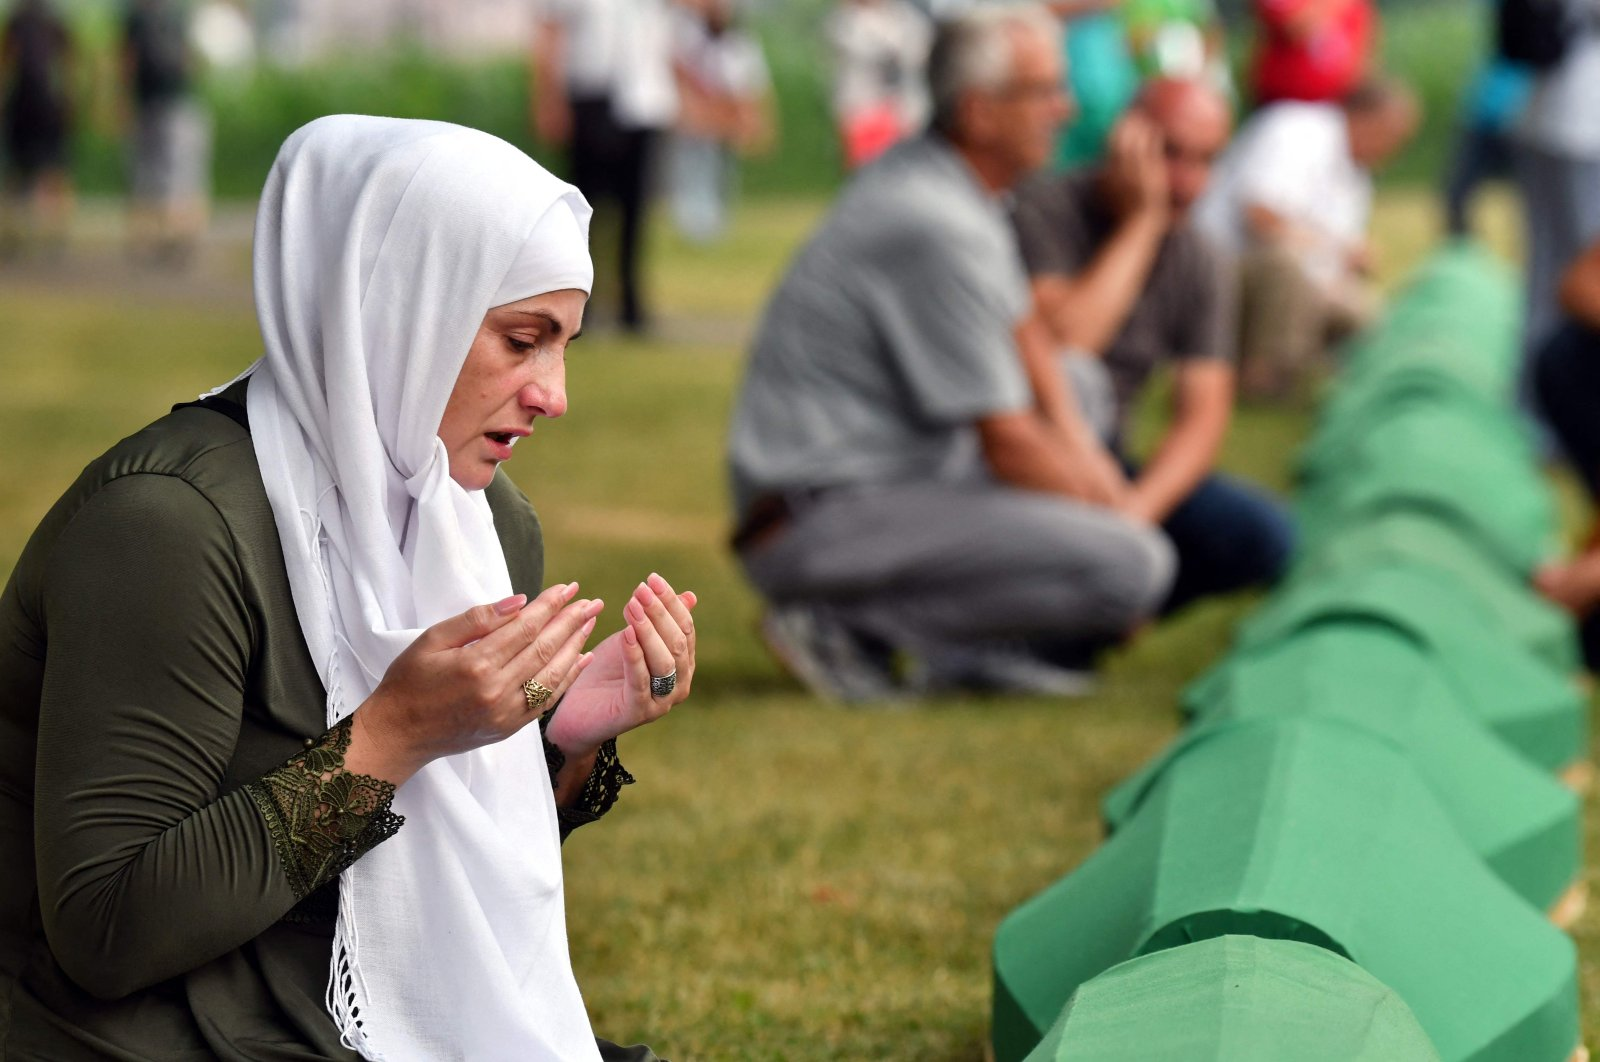 A Muslim Bosnian woman, a survivor of the Srebrenica 1995 massacre, prays as she mourns near the casket of her relative, at the memorial cemetery in the village of Potocari, near the eastern Bosnian town of Srebrenica, on July 10, 2021. (AFP Photo)